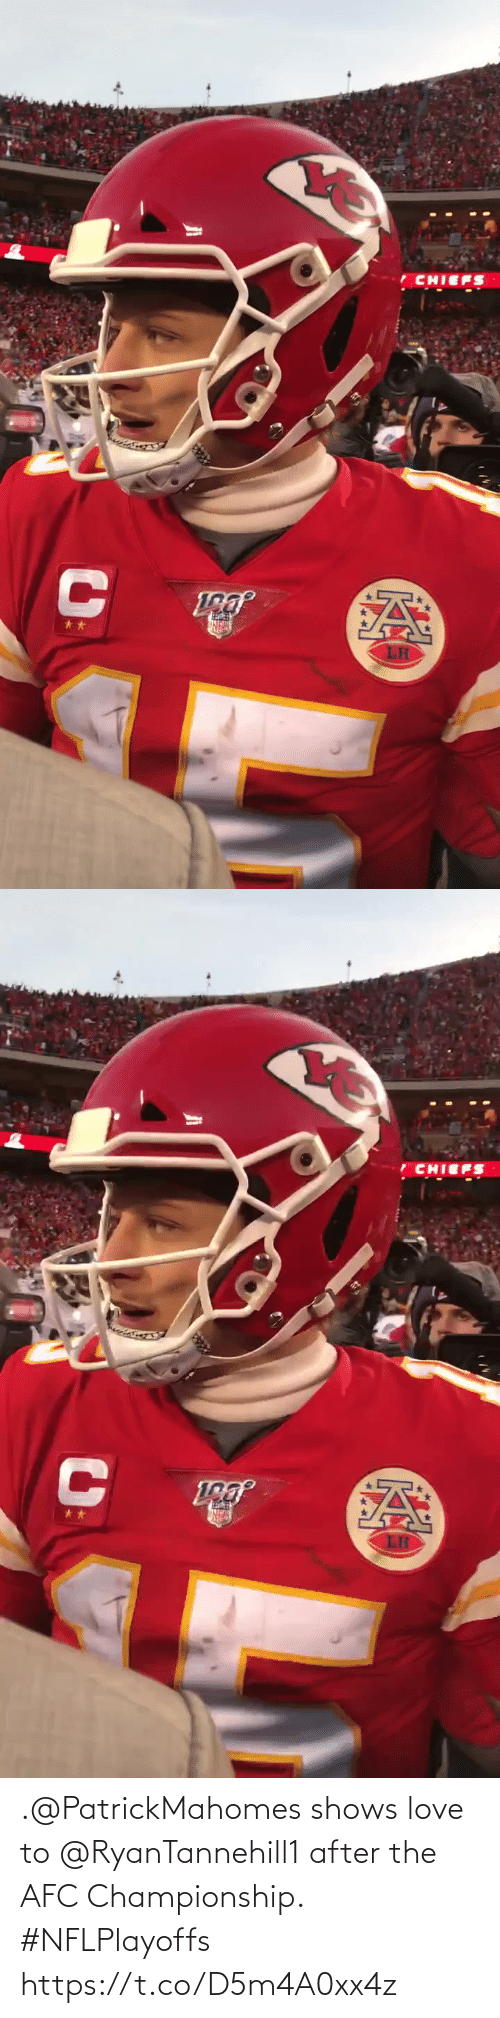 afc: .@PatrickMahomes shows love to @RyanTannehill1 after the AFC Championship. #NFLPlayoffs https://t.co/D5m4A0xx4z